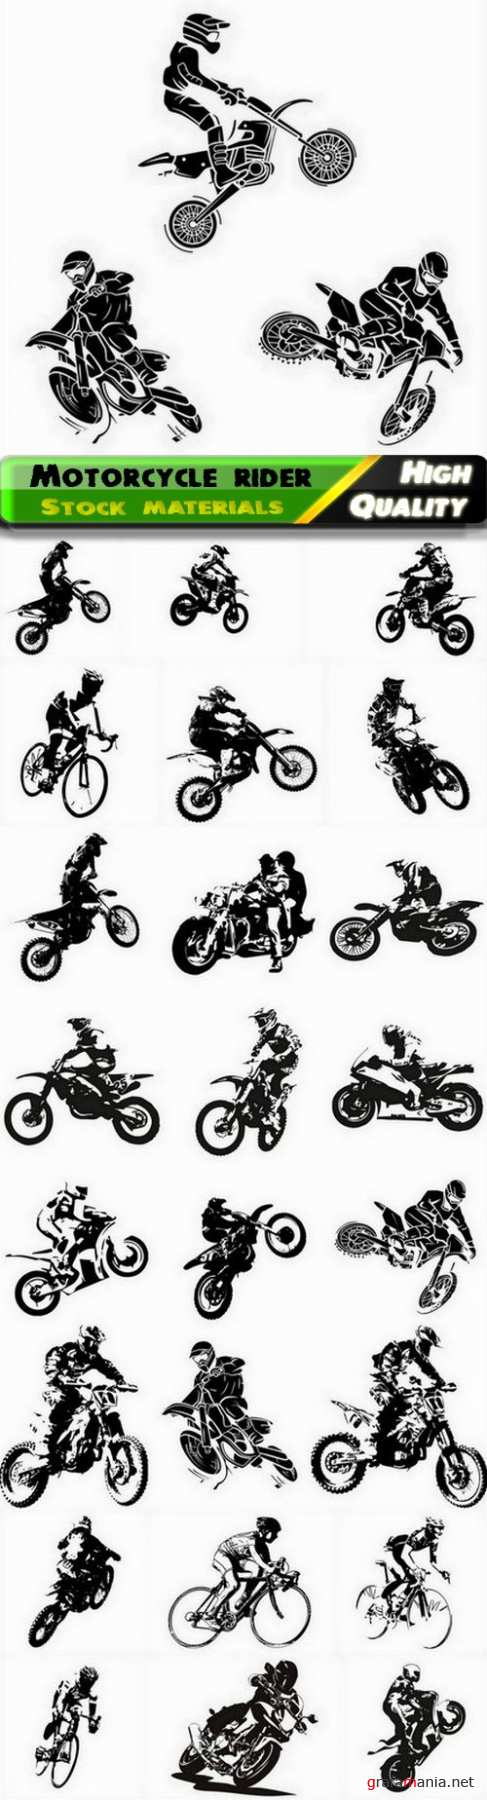 Rider participates motocross championship on motorcycle 25 Eps